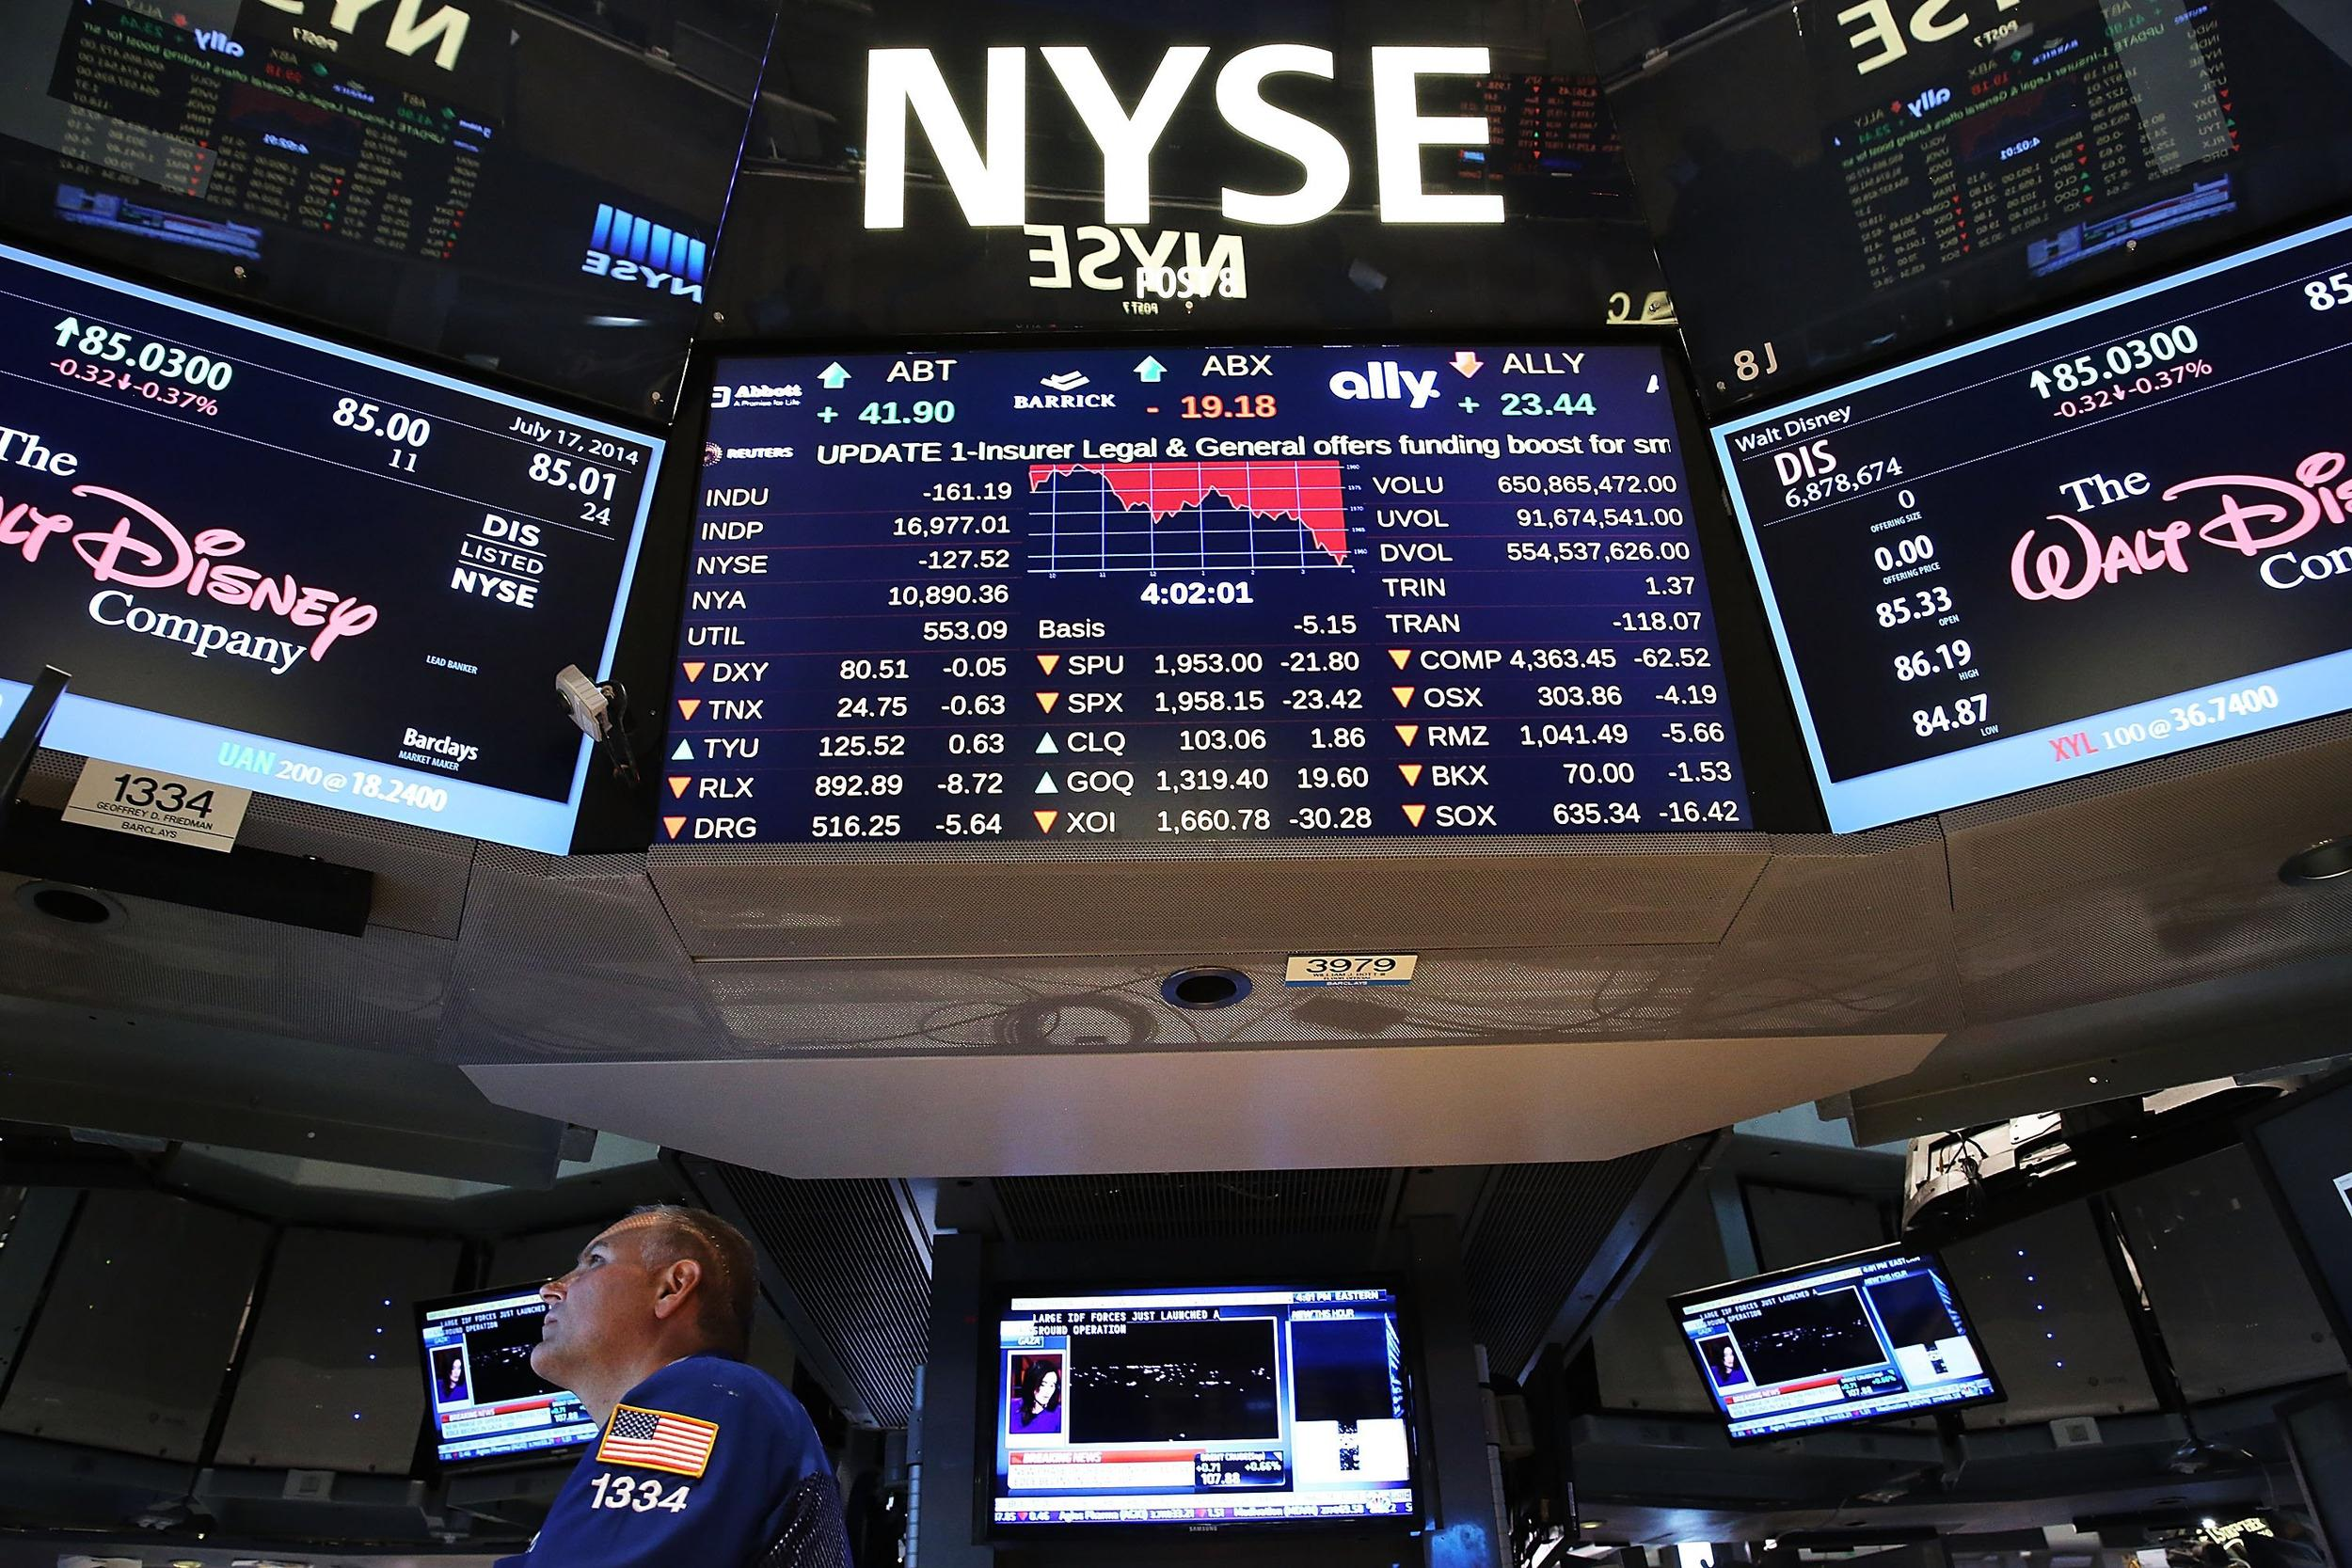 The Dow and S&P 500 both hit all-time highs during trading at the New York Stock Exchange on Tuesday.